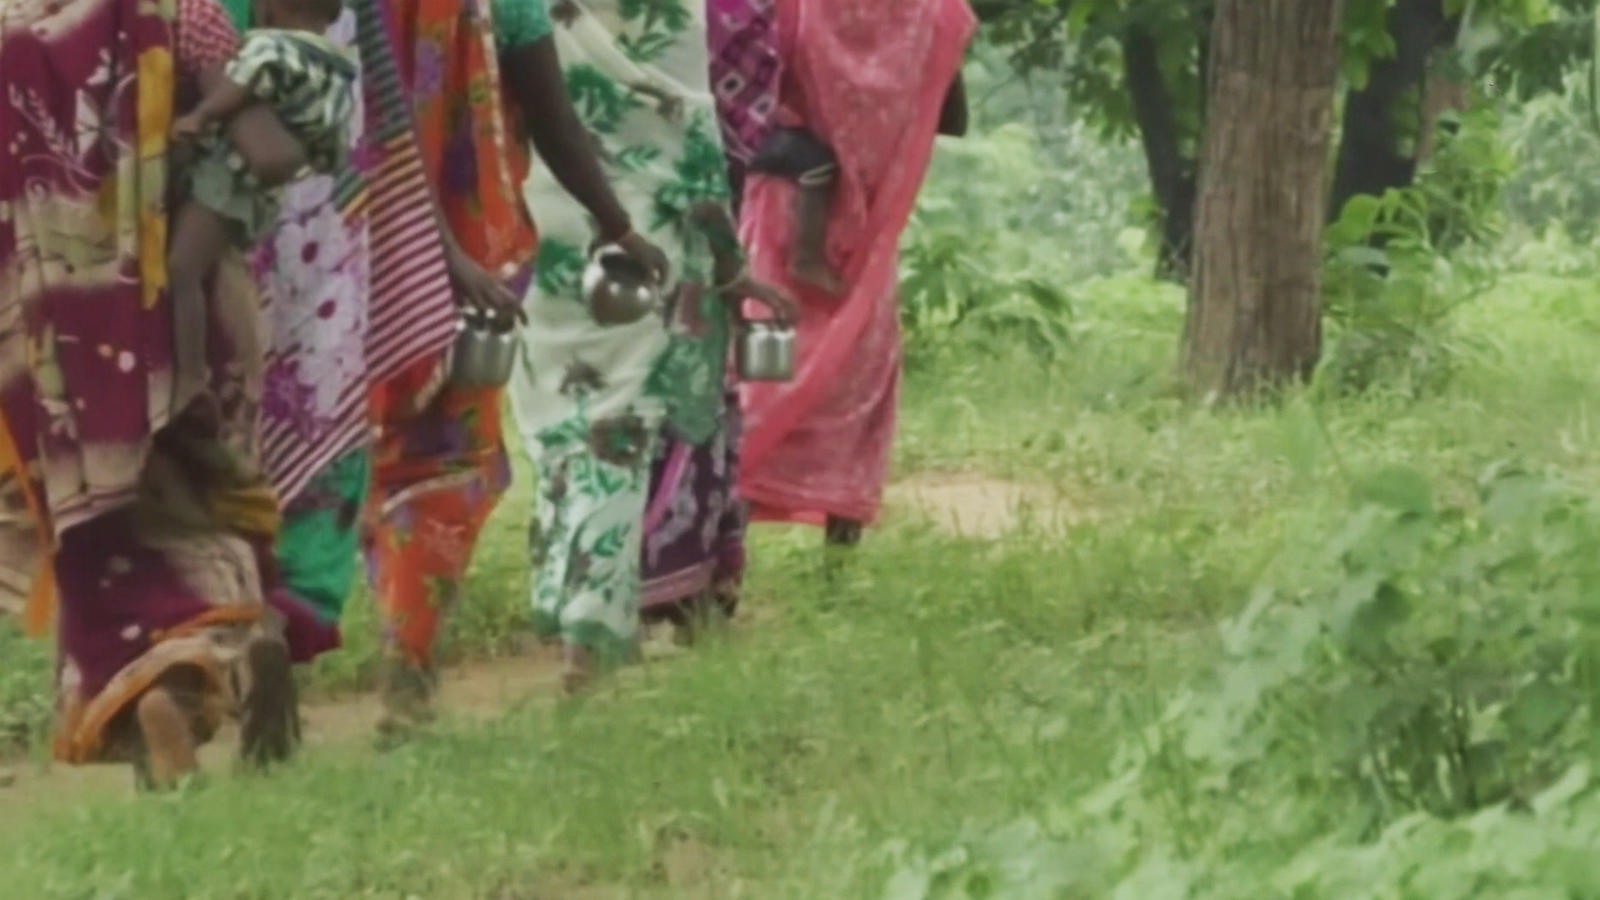 chhattisgarhs-odf-village-has-no-toilets